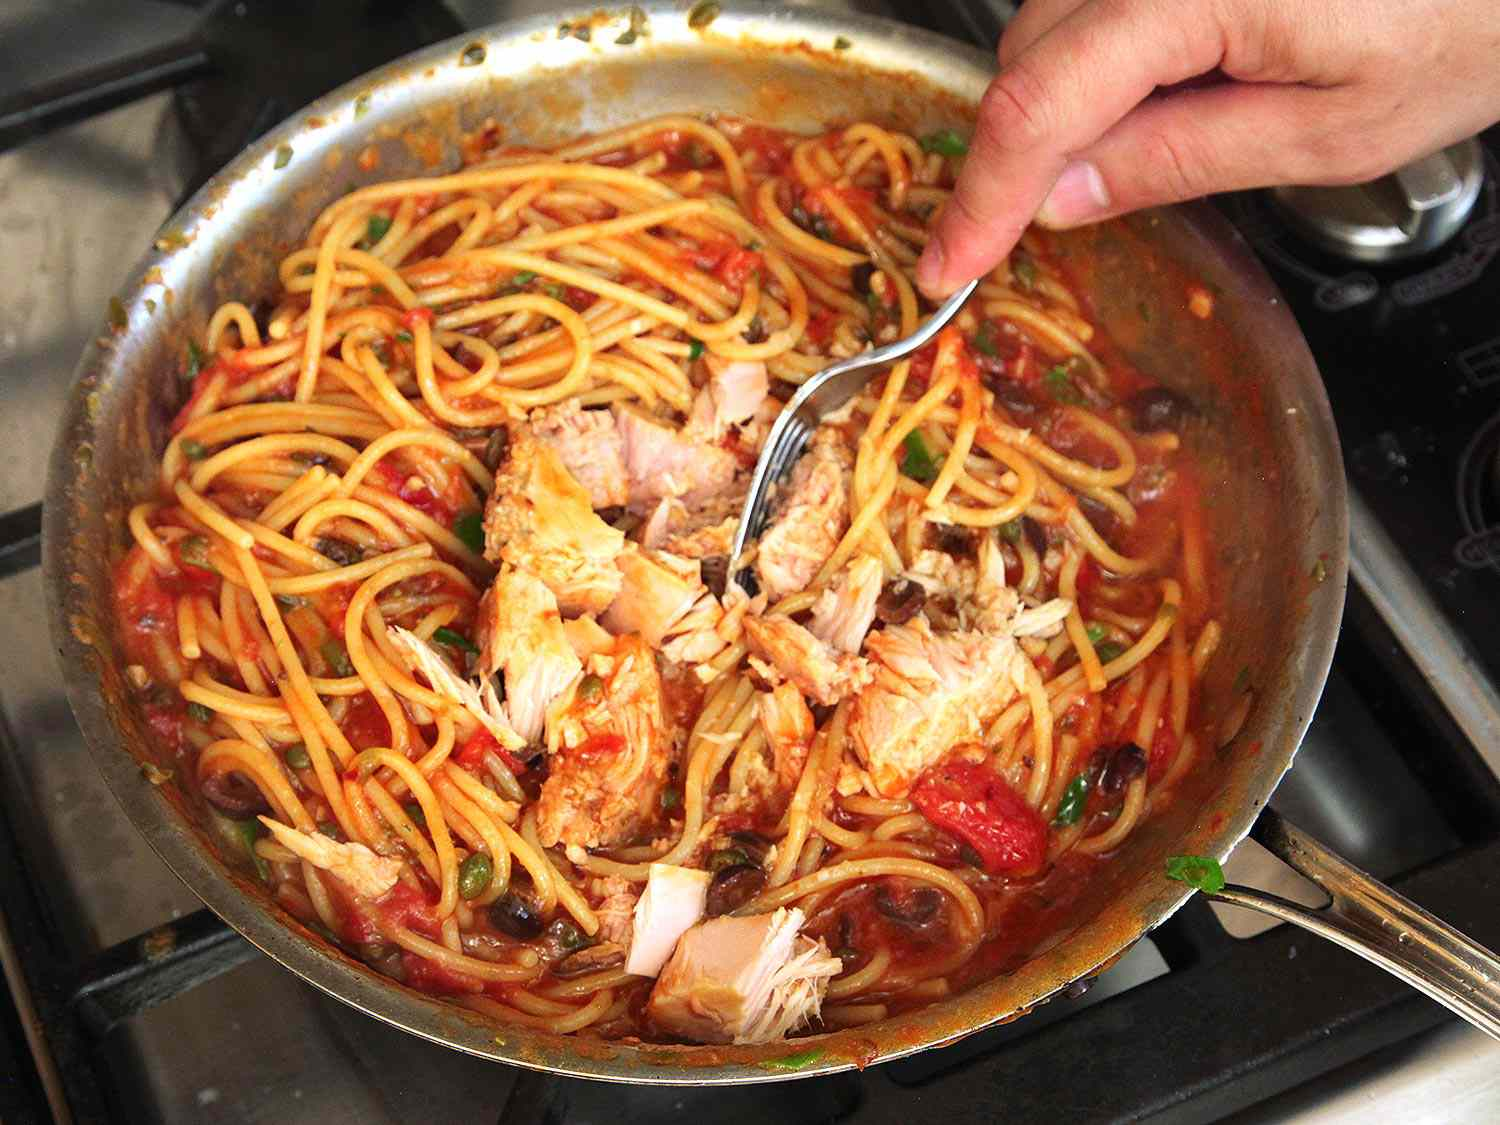 Adding canned tuna to a skillet of pasta puttanesca.